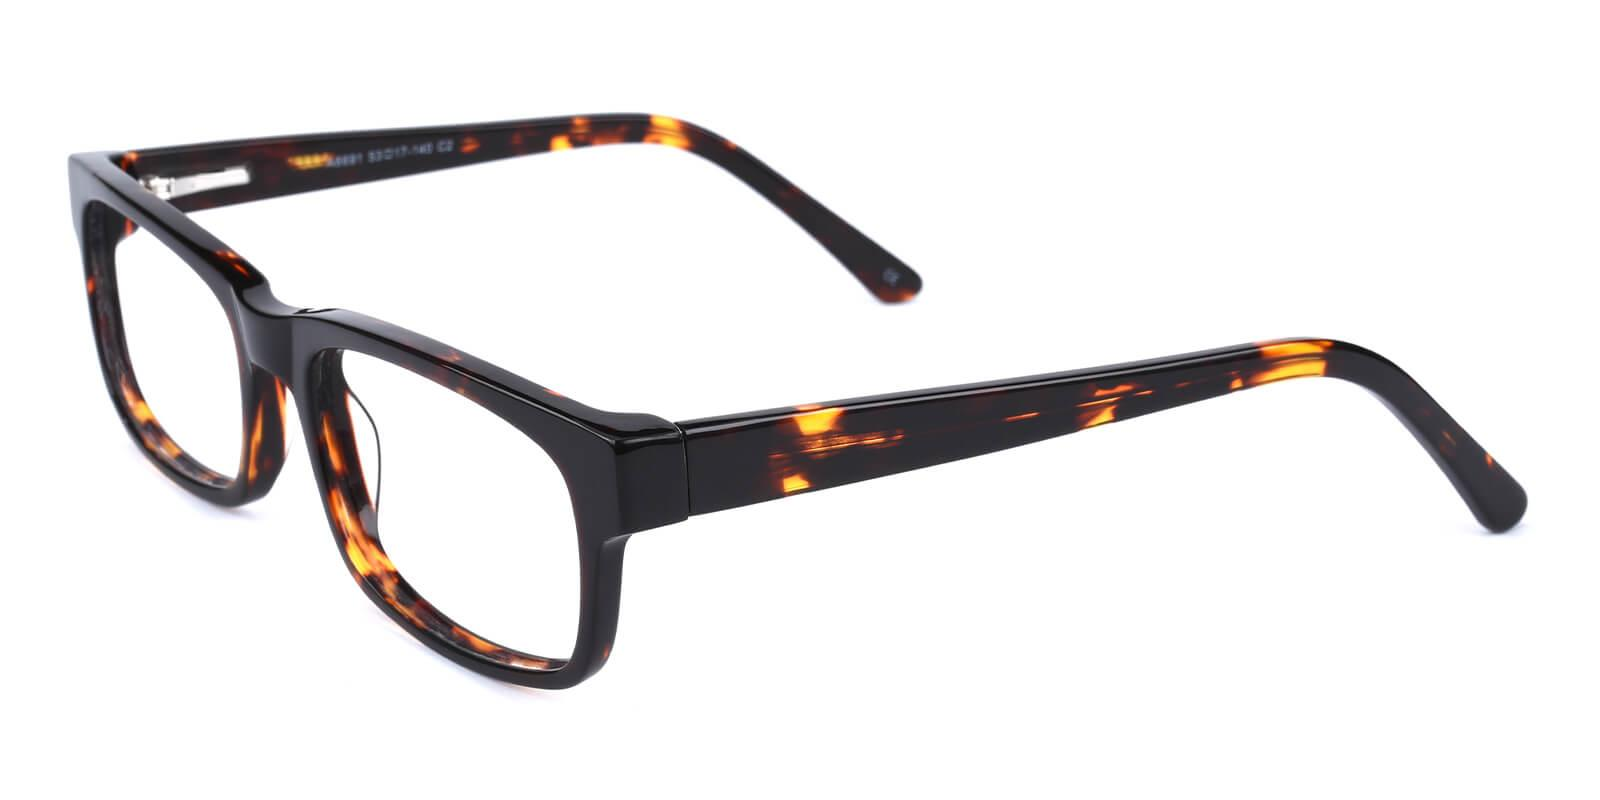 Eware-Tortoise-Rectangle-Acetate-Eyeglasses-detail